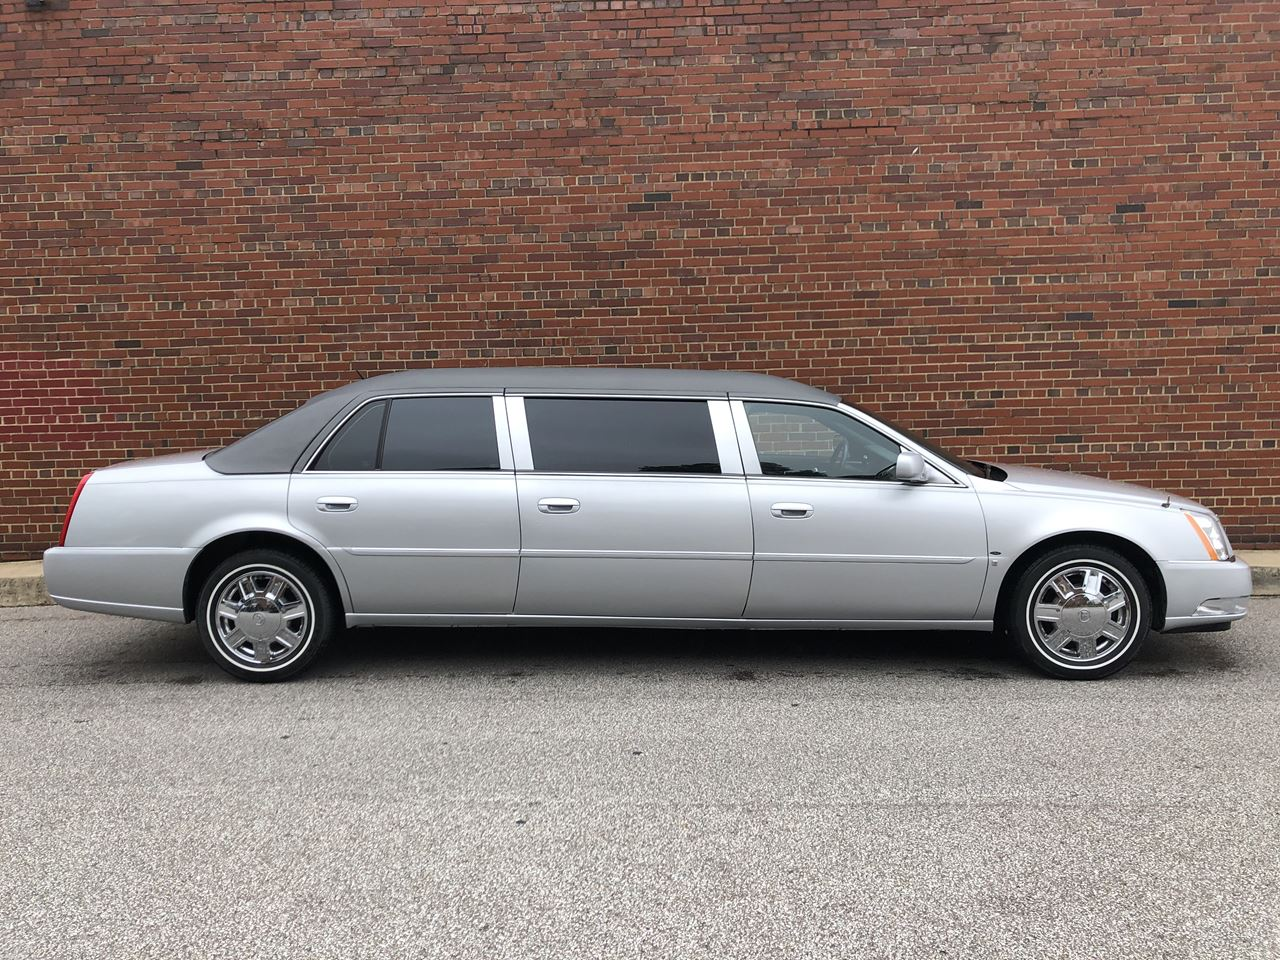 2007 Cadillac Eagle 6 Door Limousine